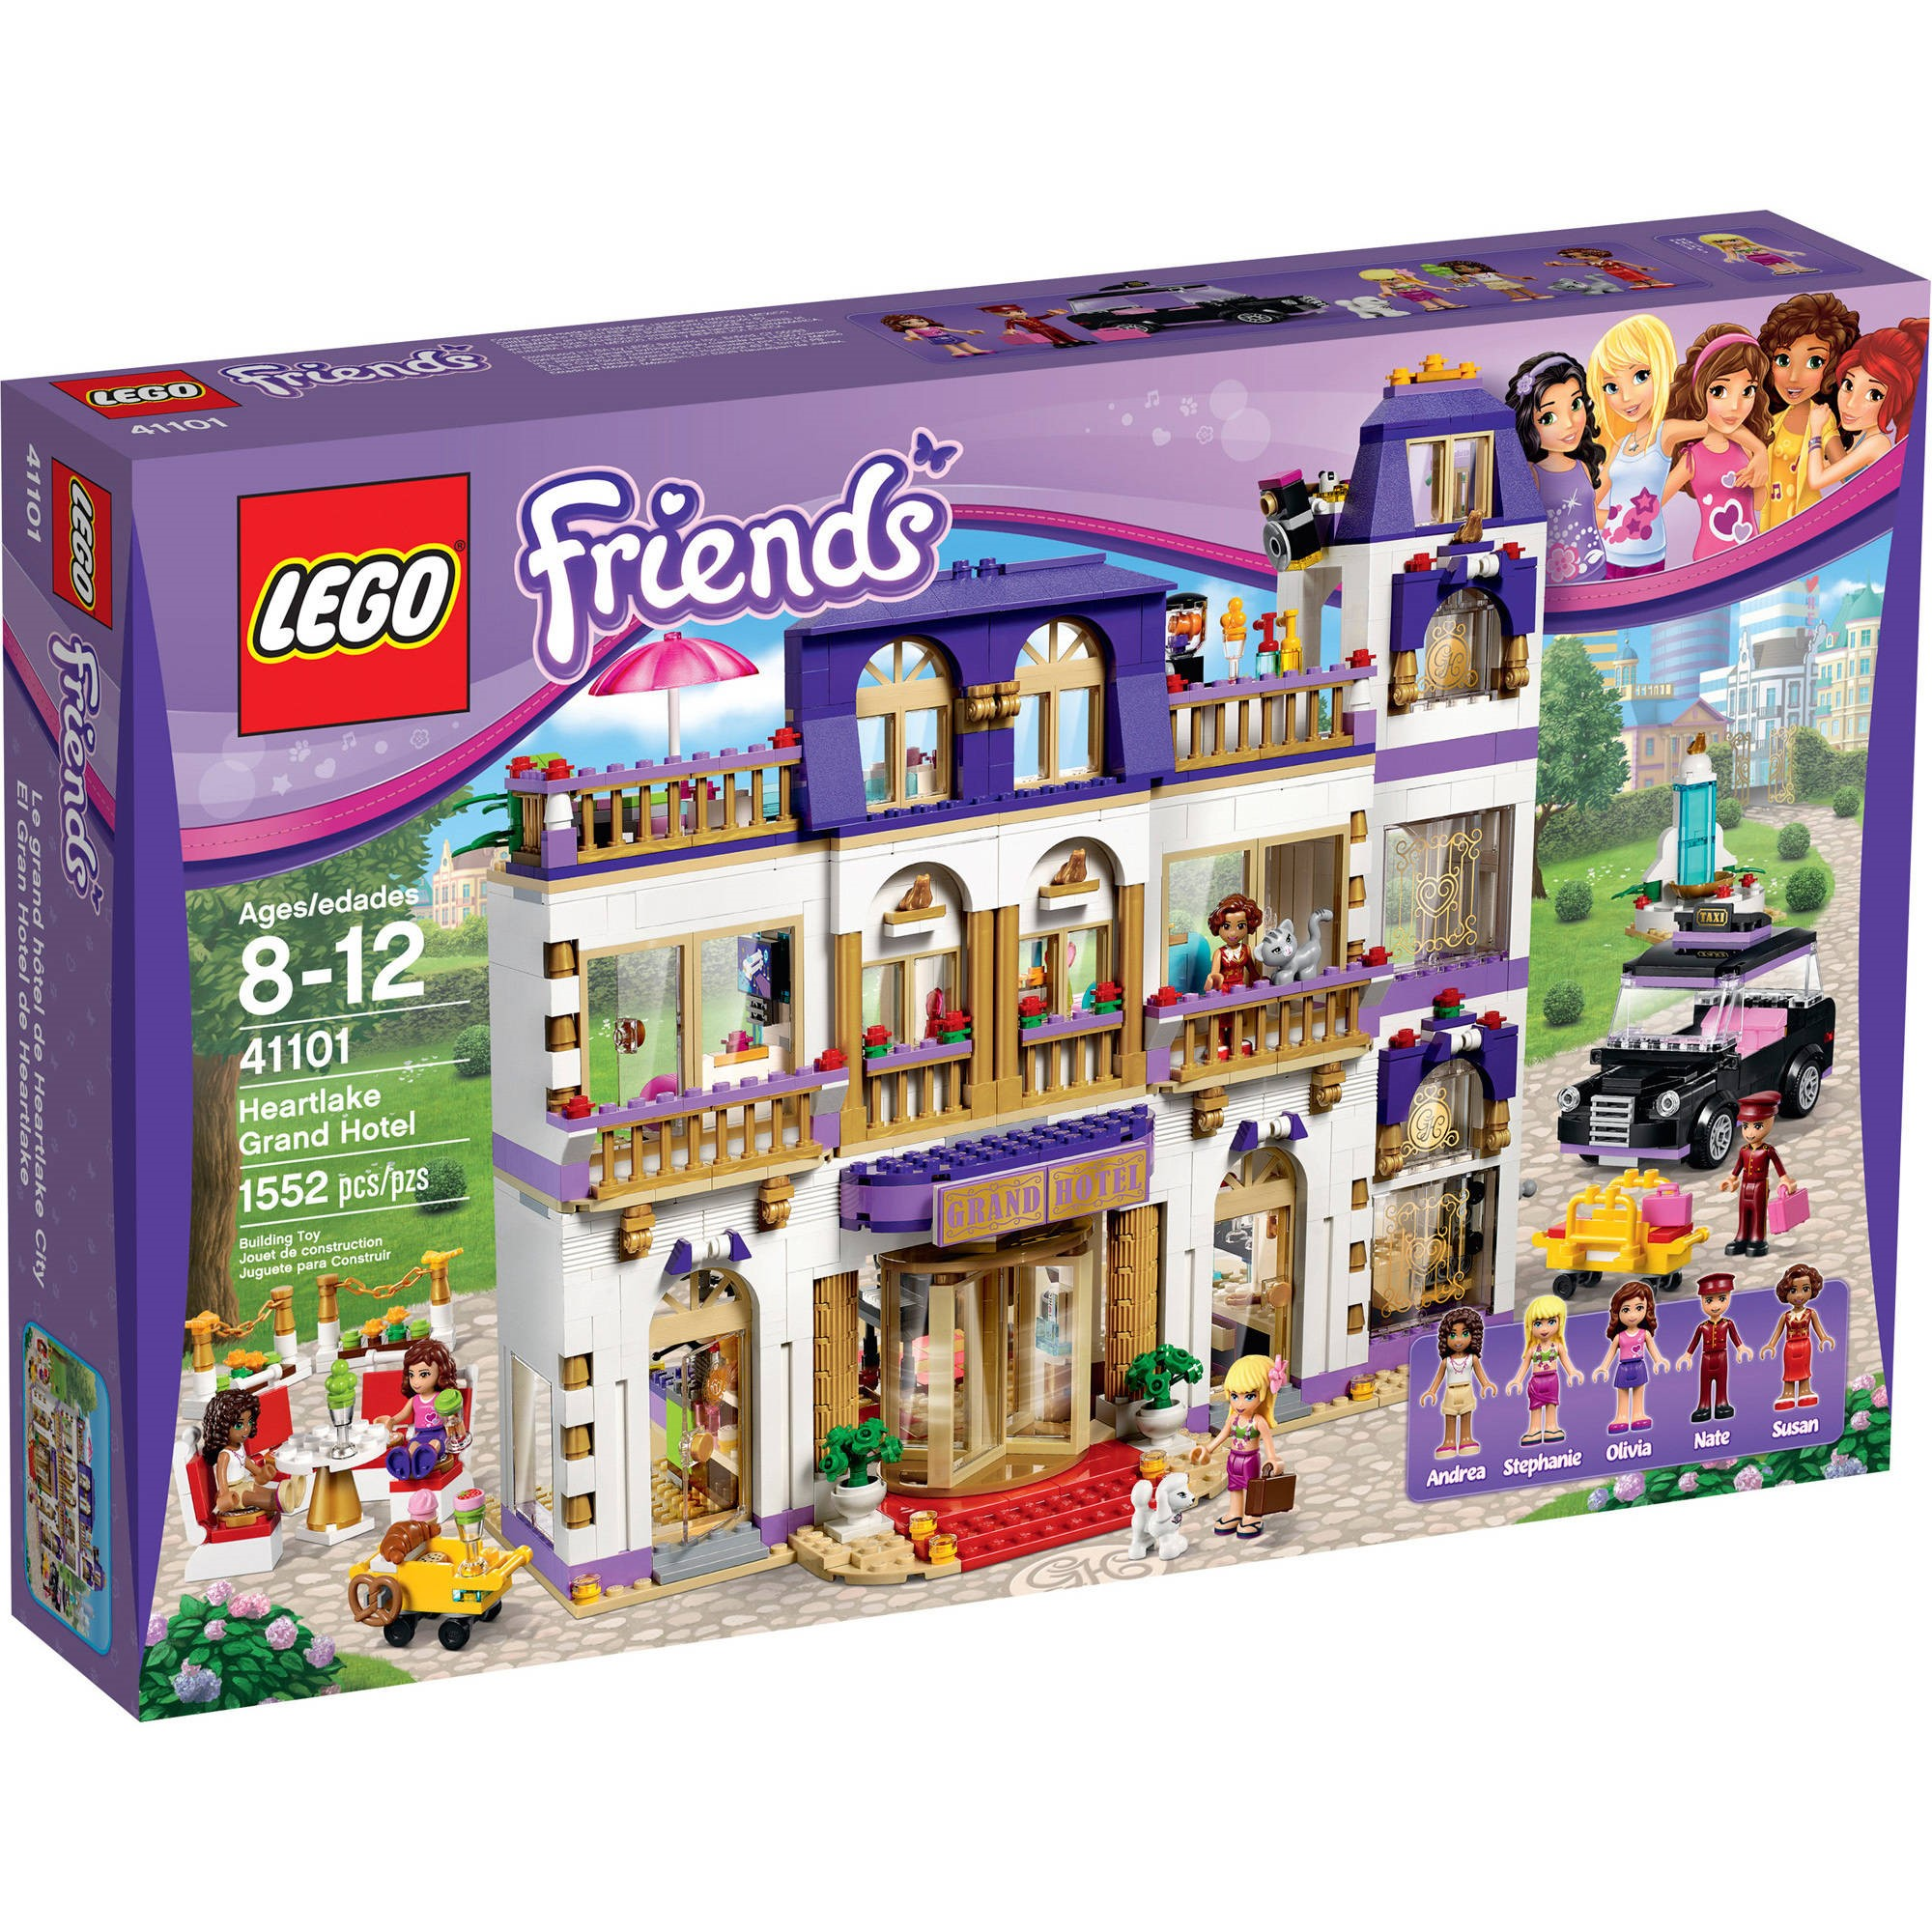 Lego Friends Heartlake Grand Hotel by Lego